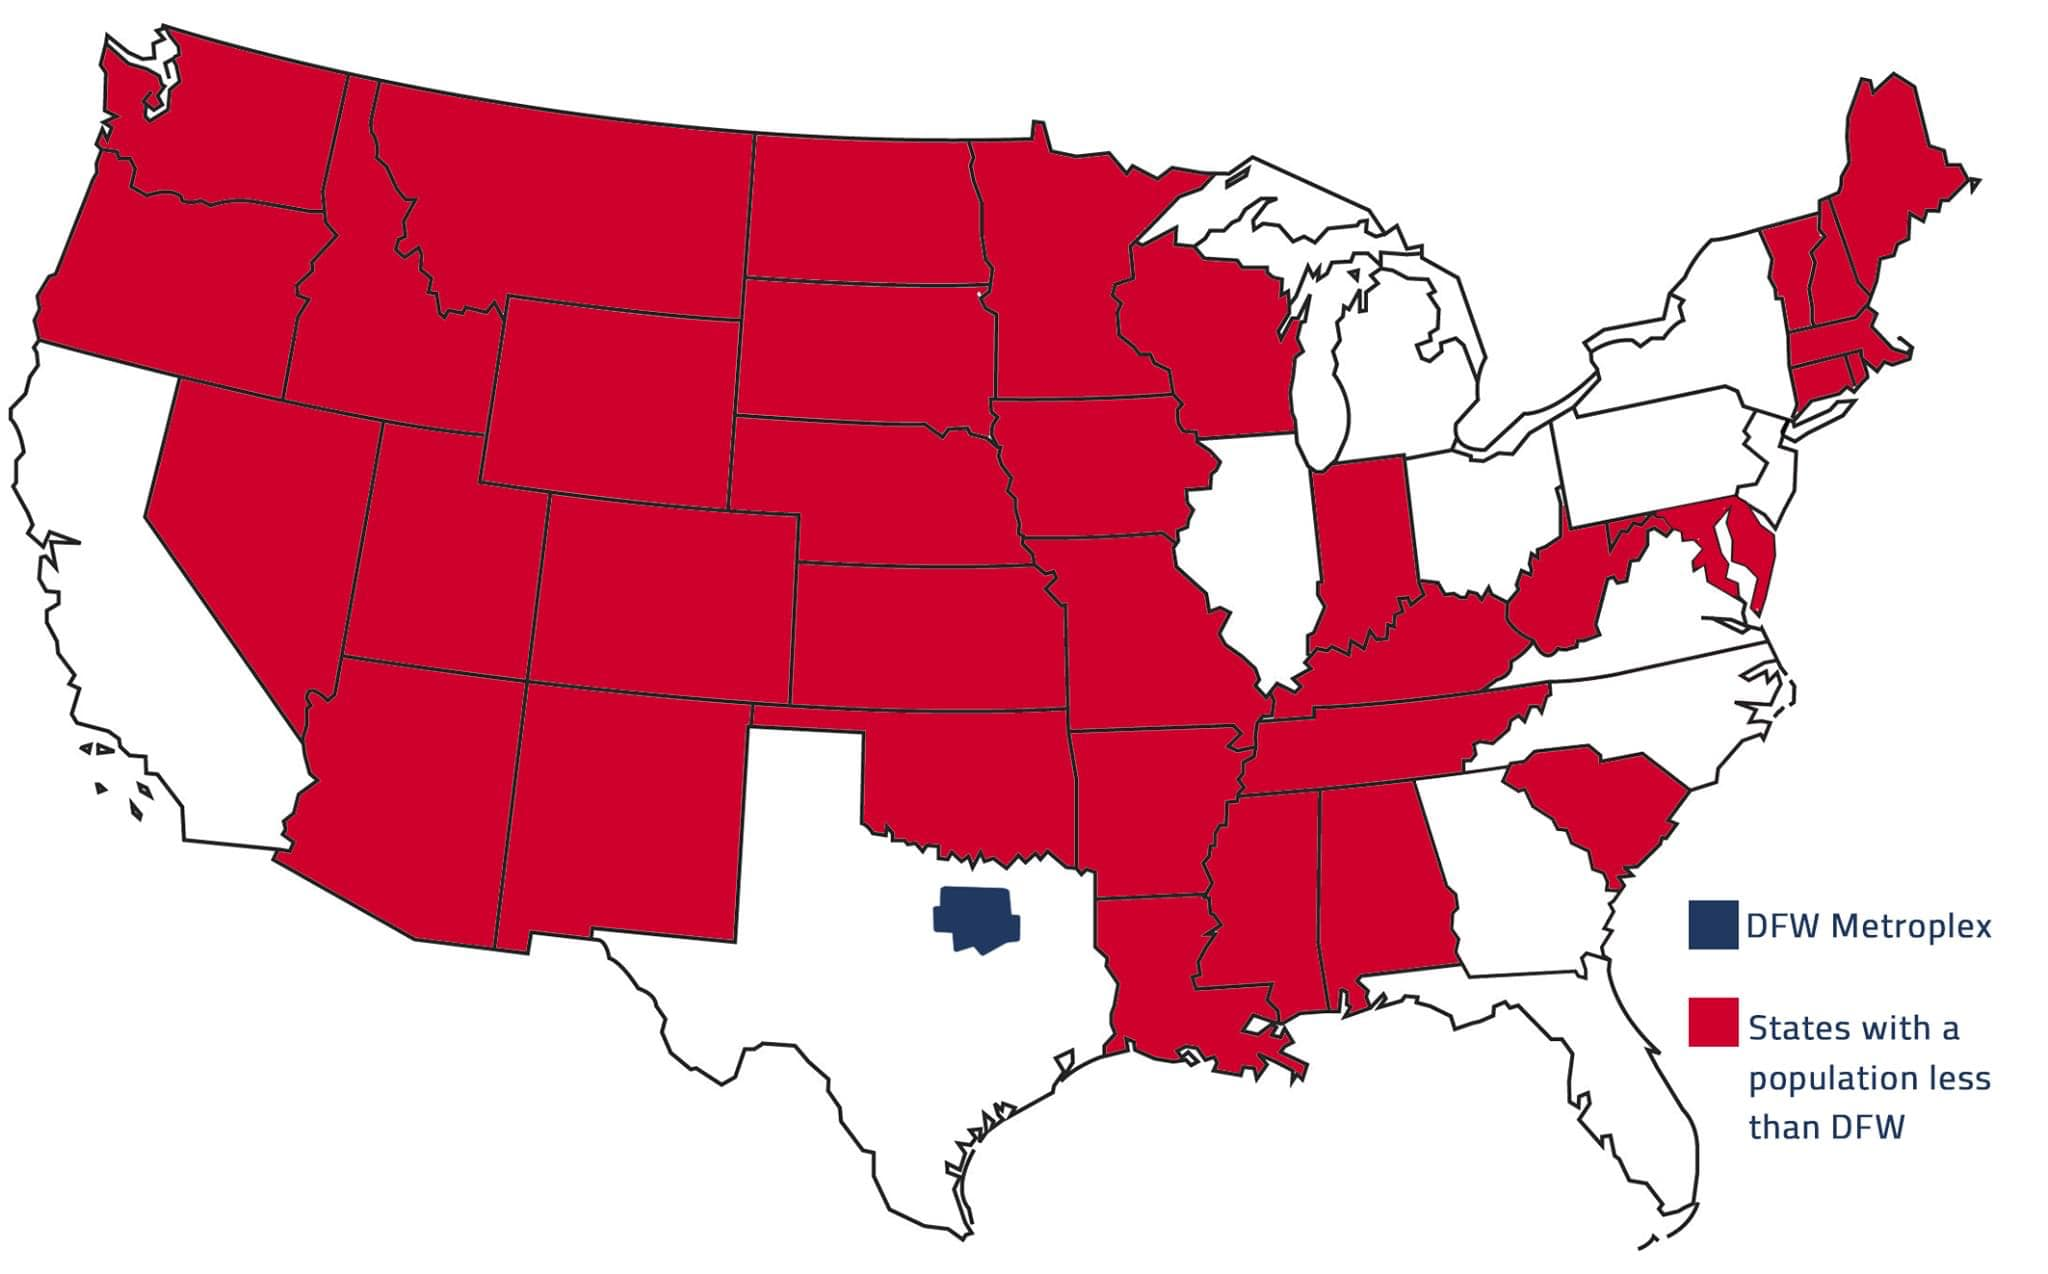 states with a population less than DFW facebook